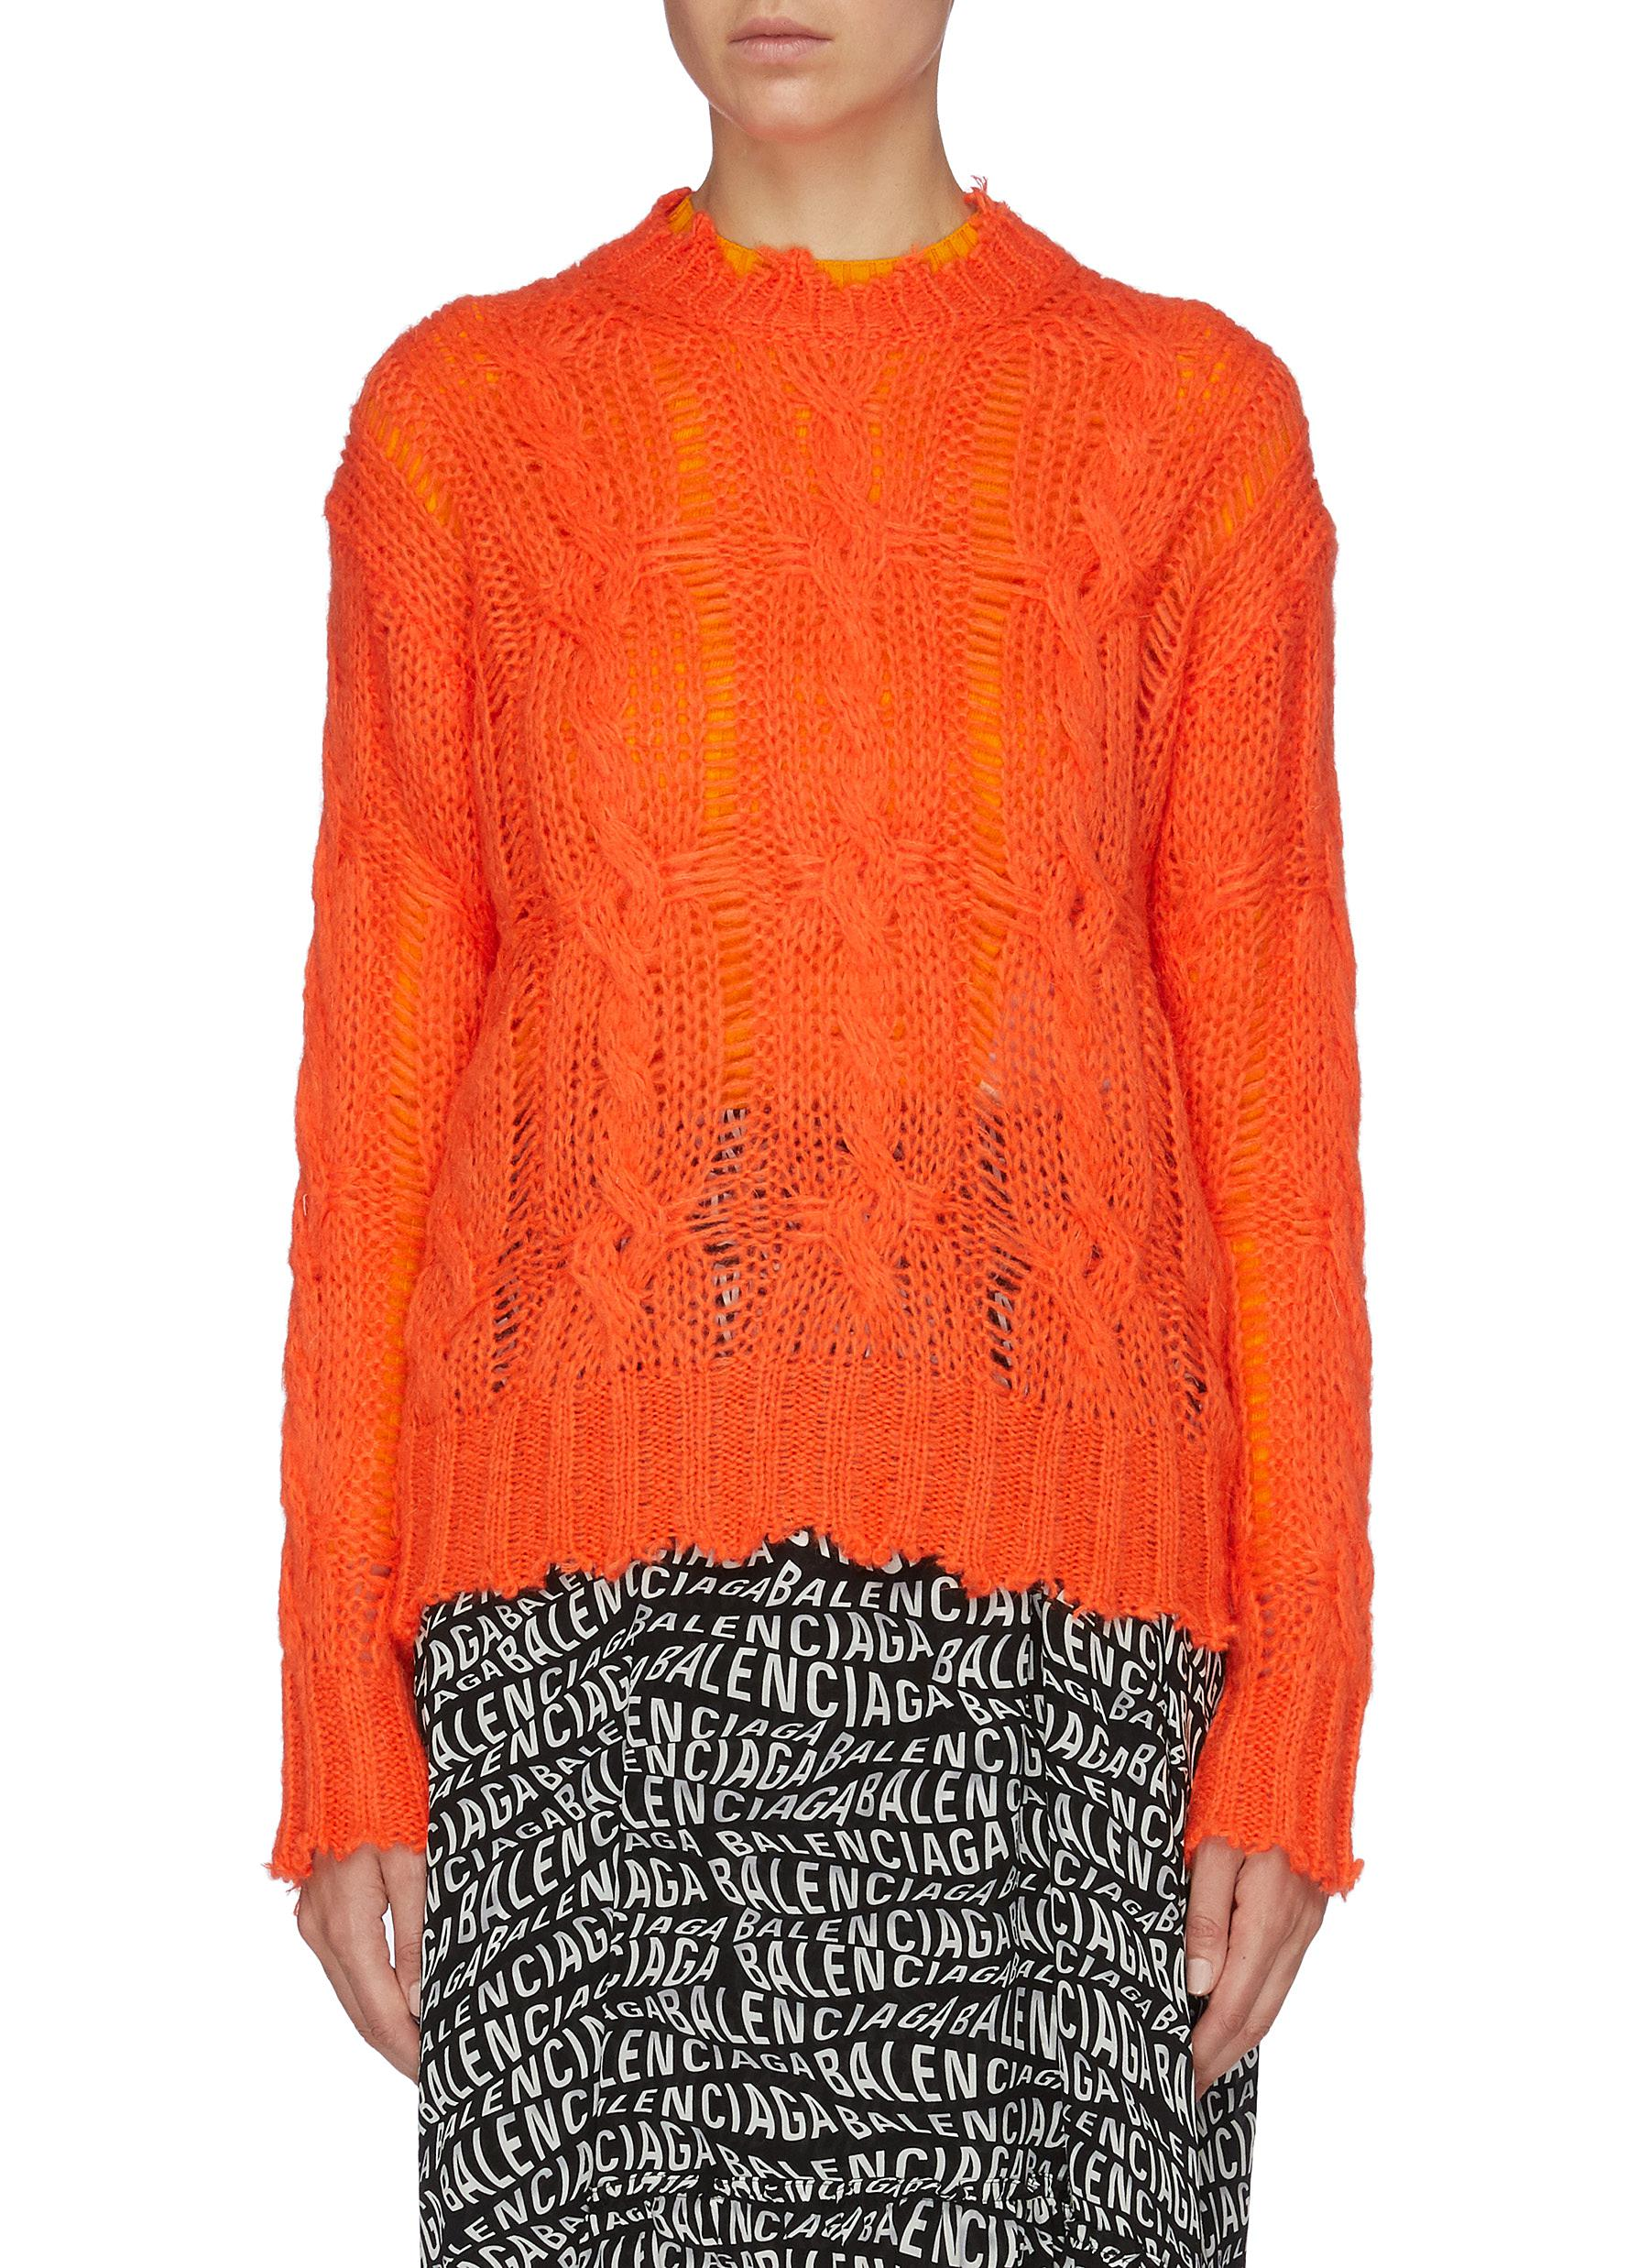 Distressed edge open cable knit sweater by Acne Studios